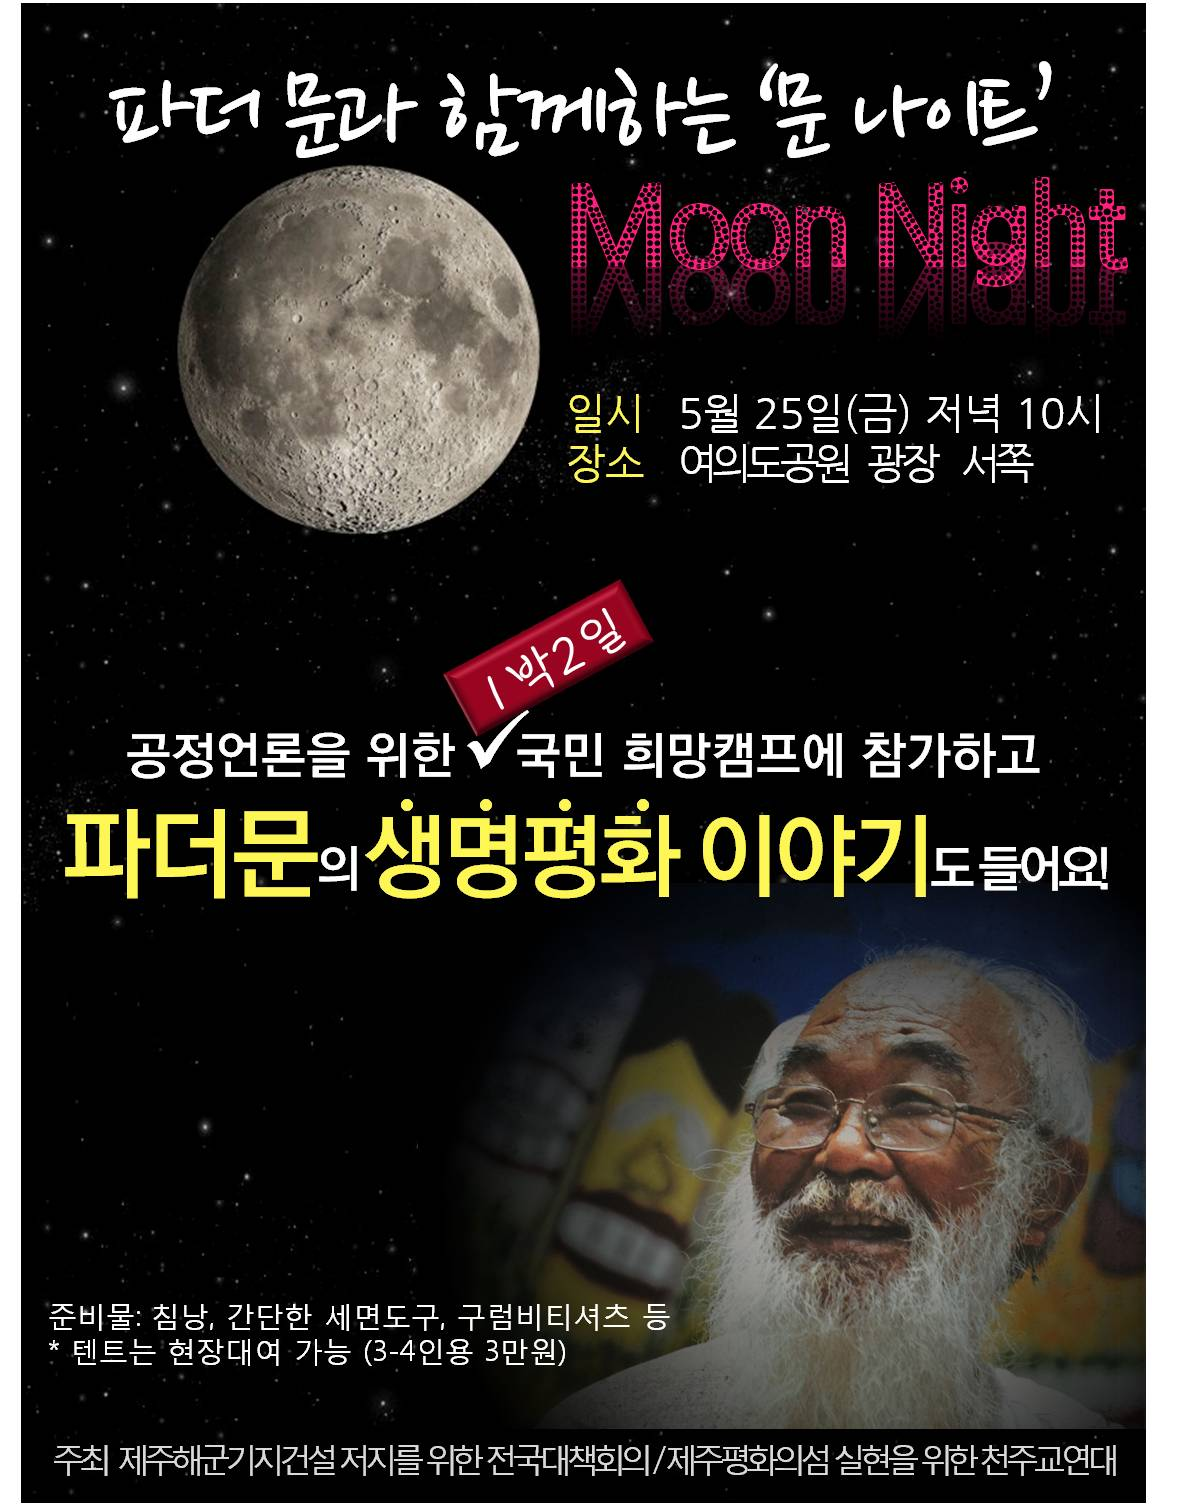 Moon Night! Yeah!!!